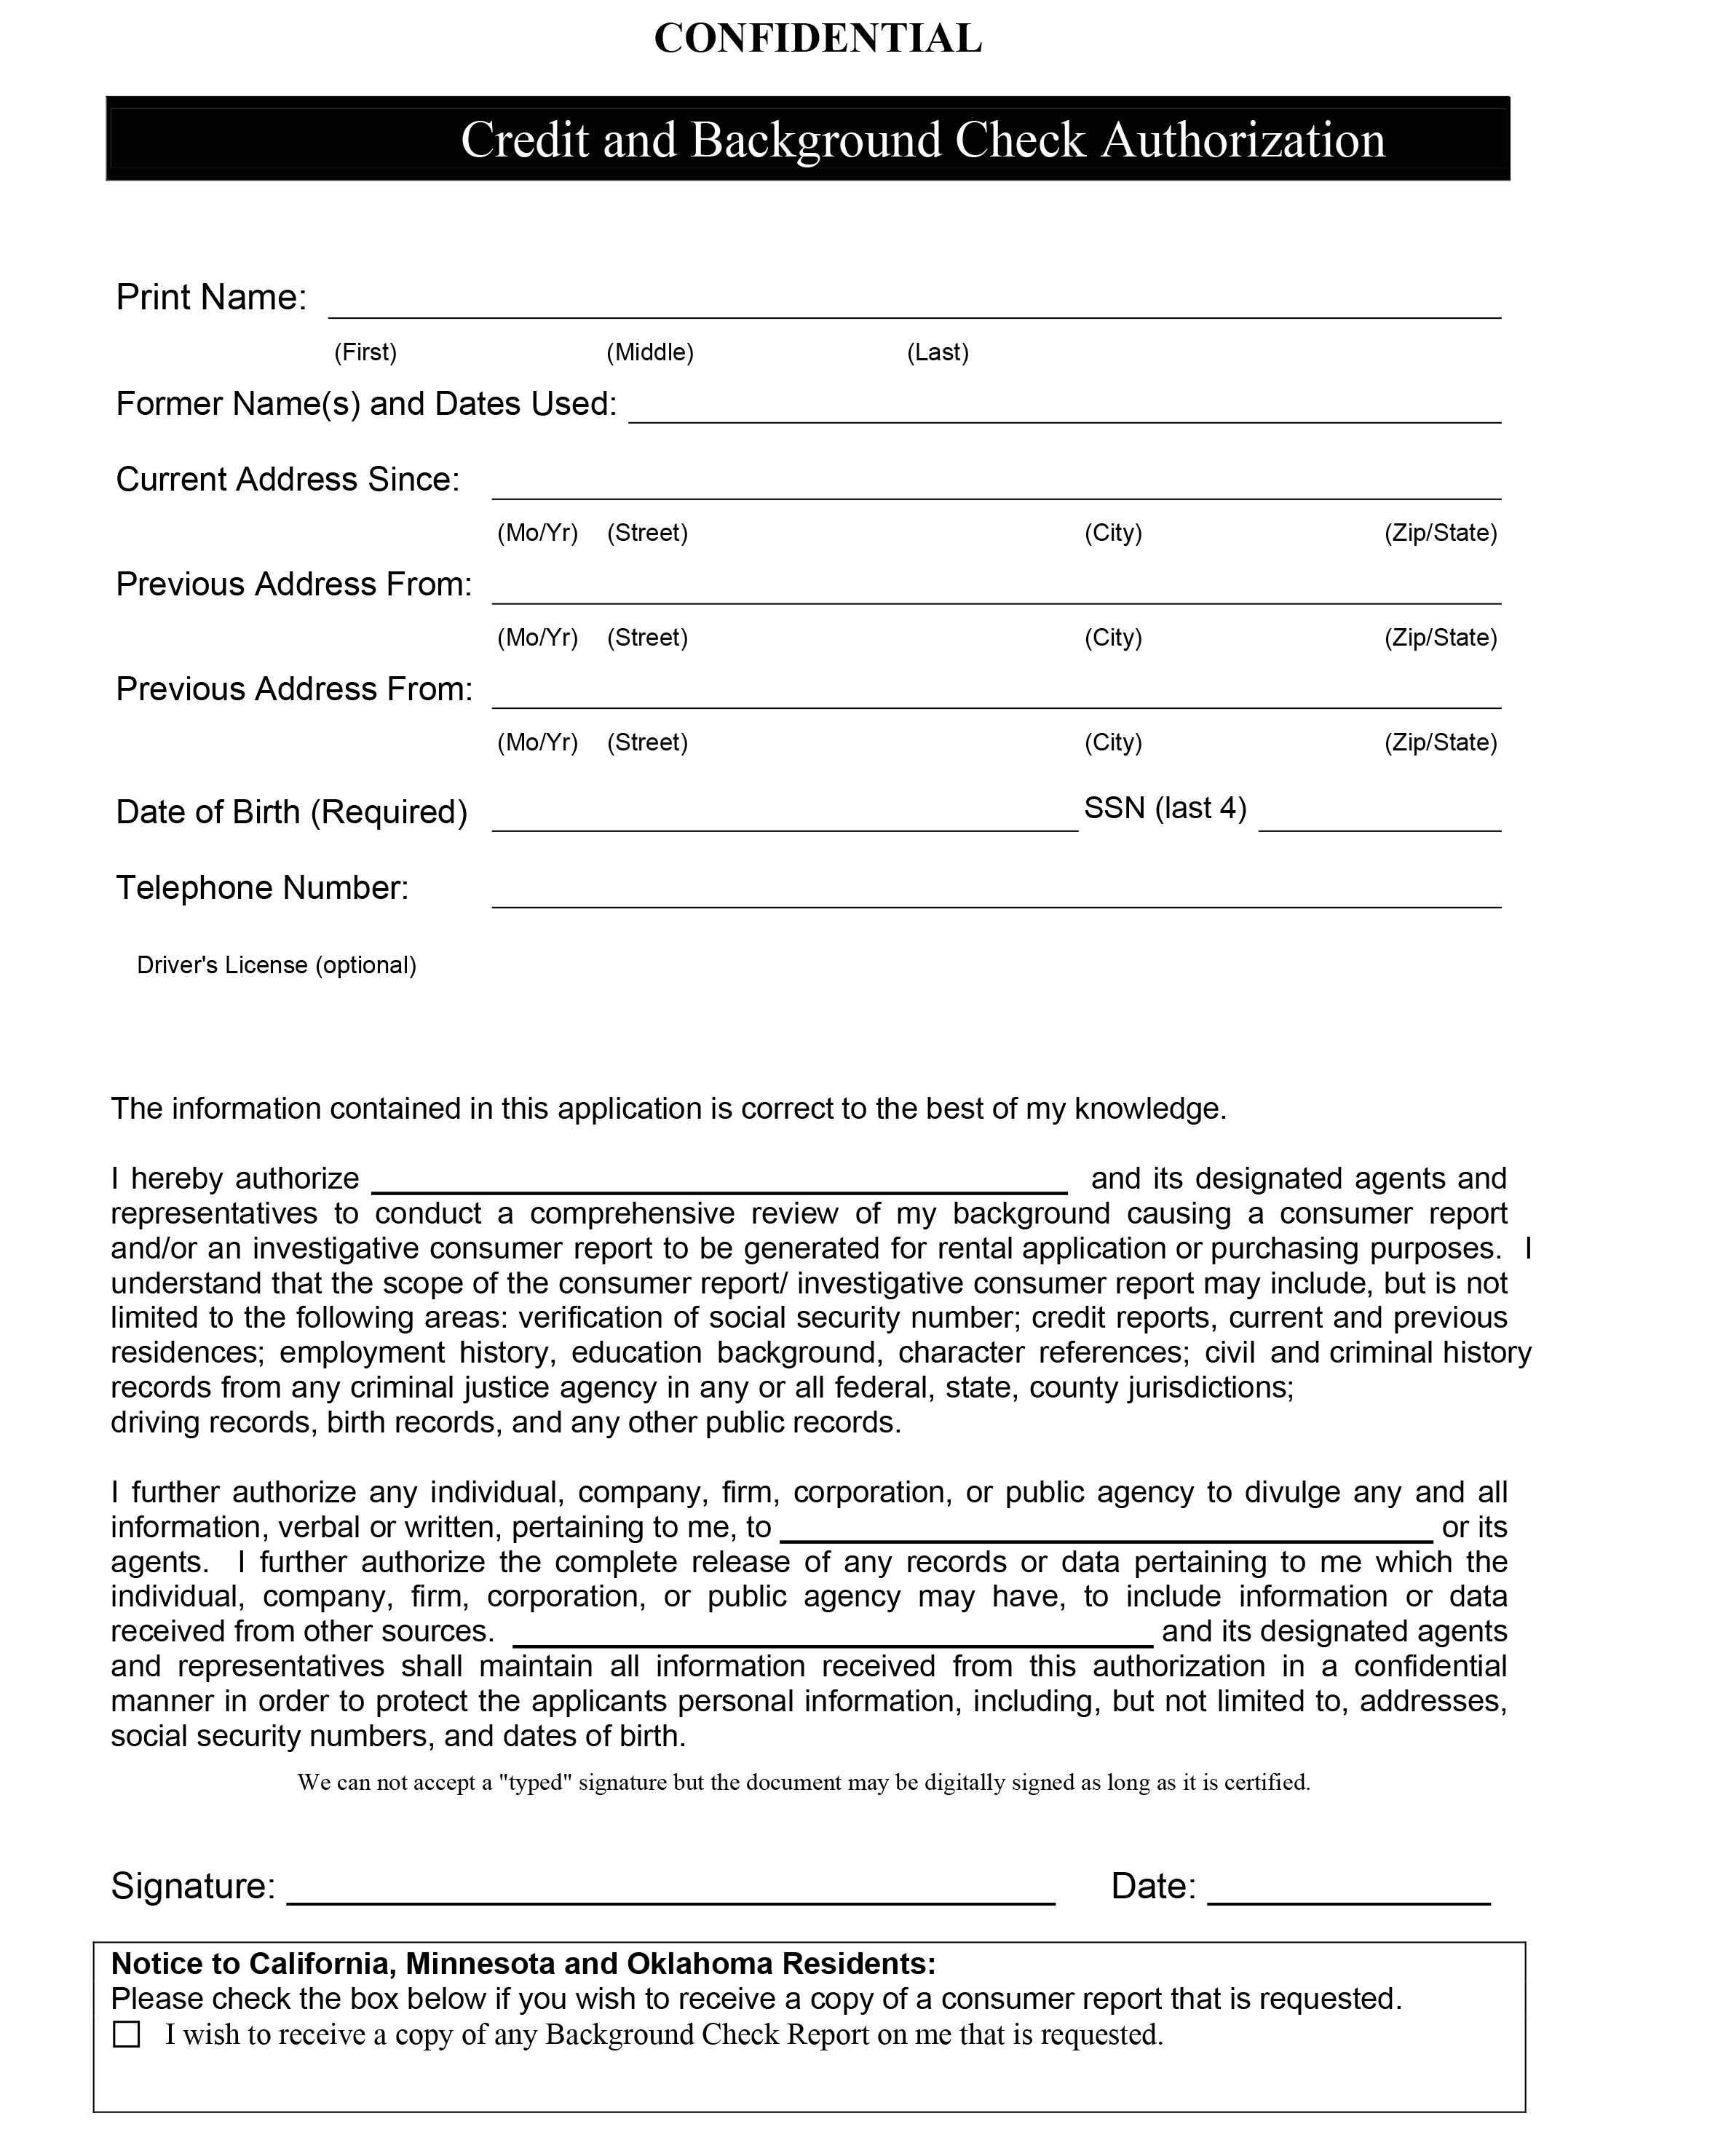 Authorization Form Here!